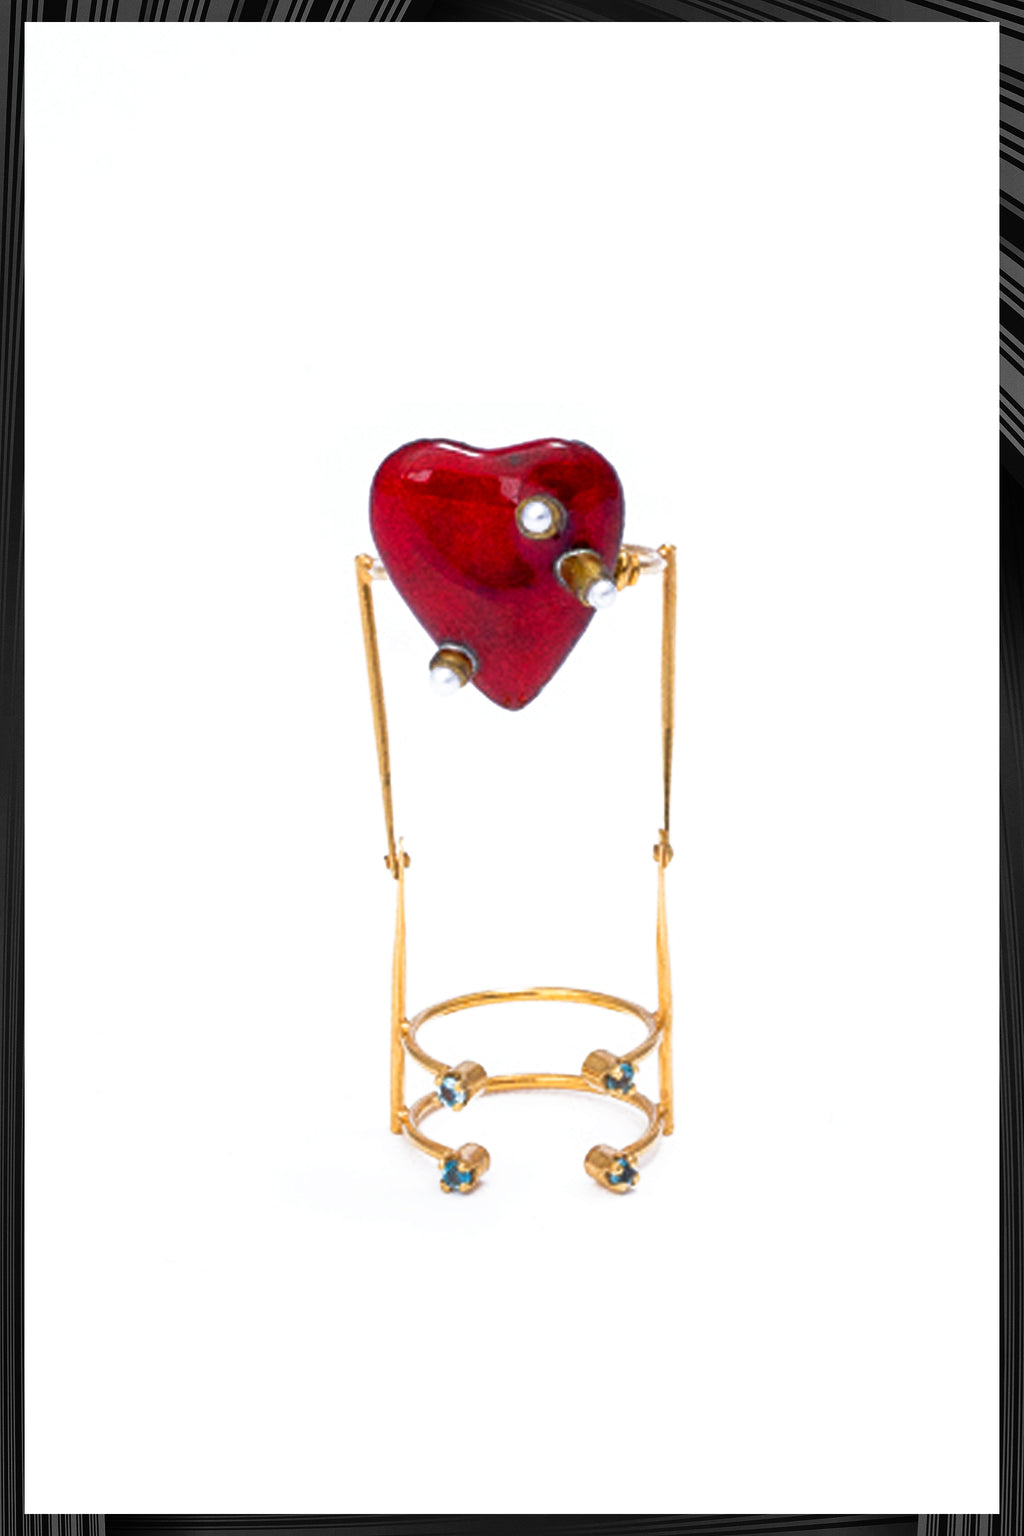 Articulated Heart Ring - Only 1 Left